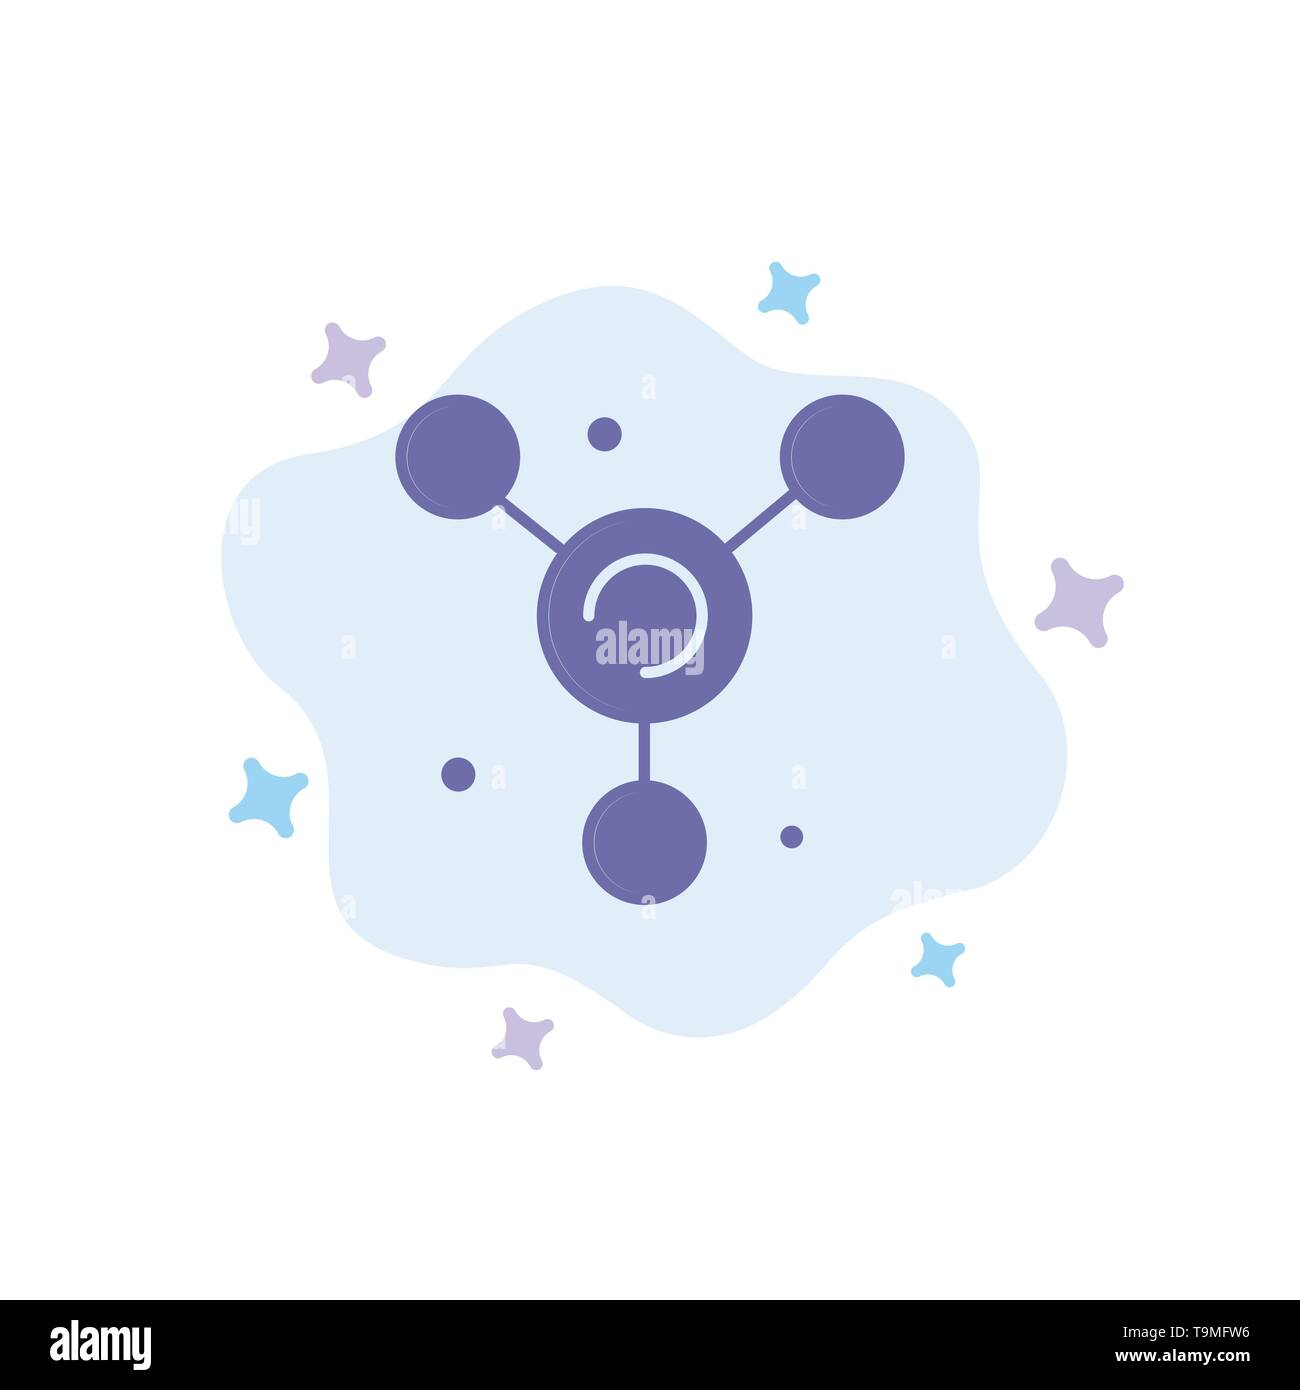 Atom, Molecule, Science Blue Icon on Abstract Cloud Background - Stock Image